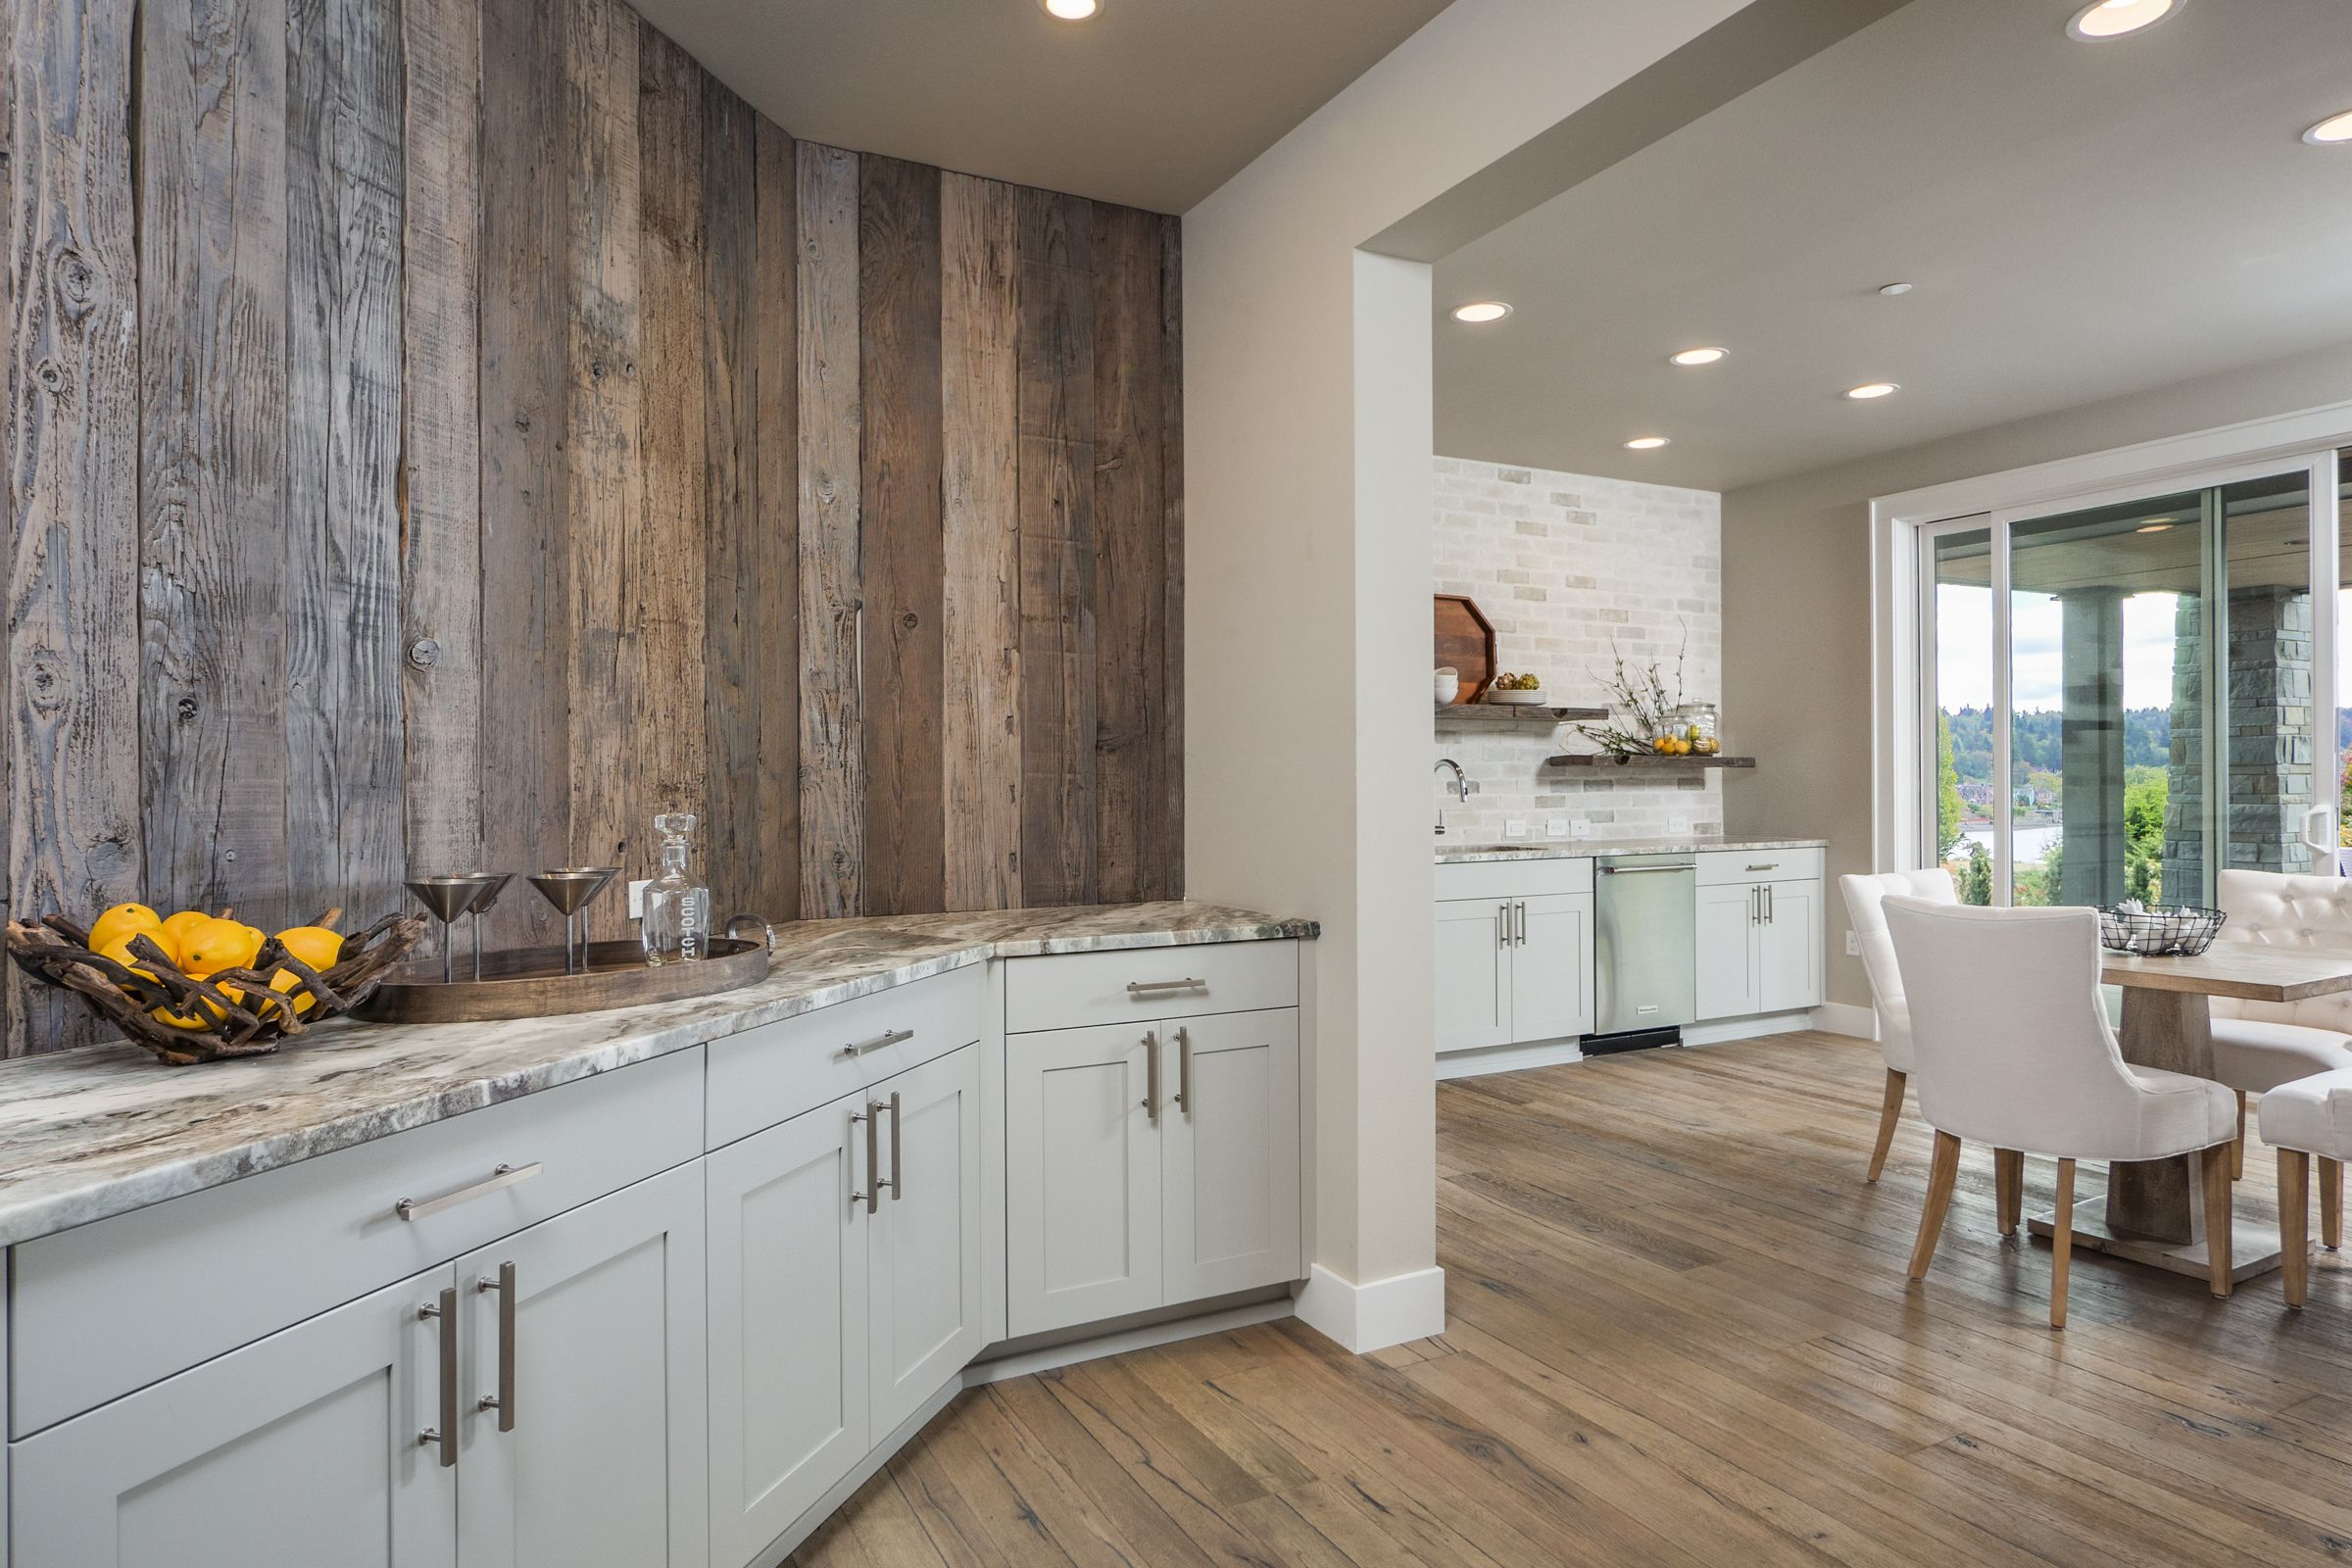 kitchen cons latitude pros exquisite cabinet bahroom and furniture frameless design cabinets